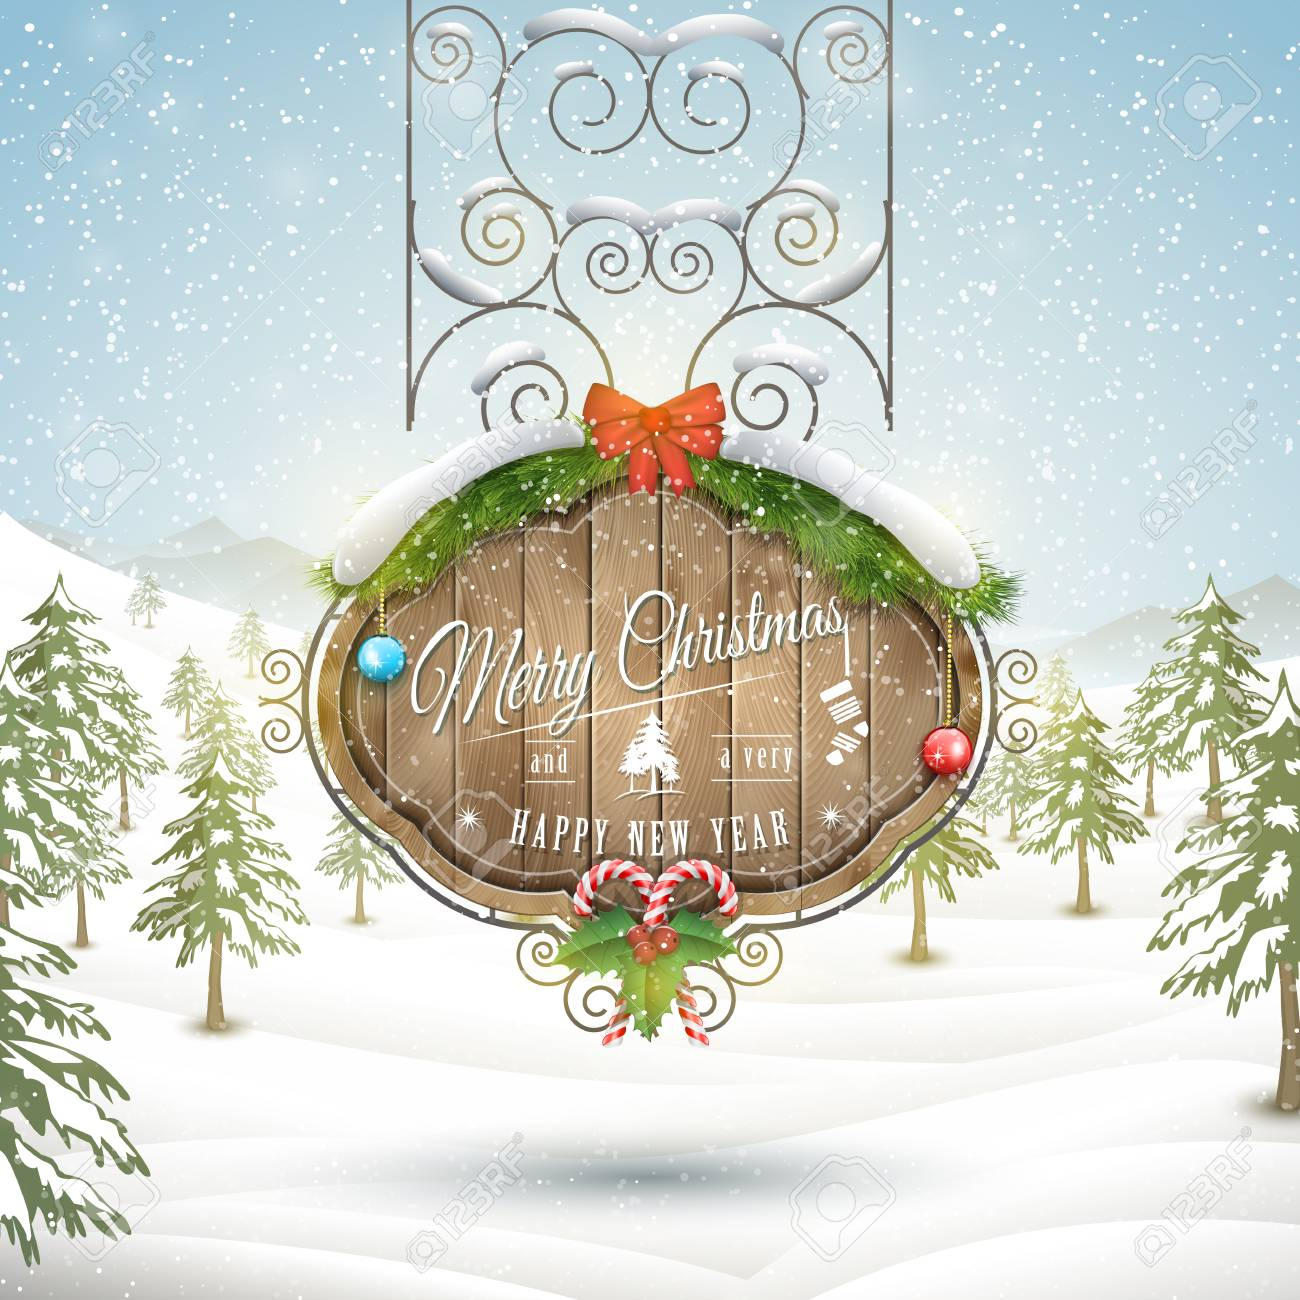 Decorated Wooden Board With Christmas Greeting Vector Illustration